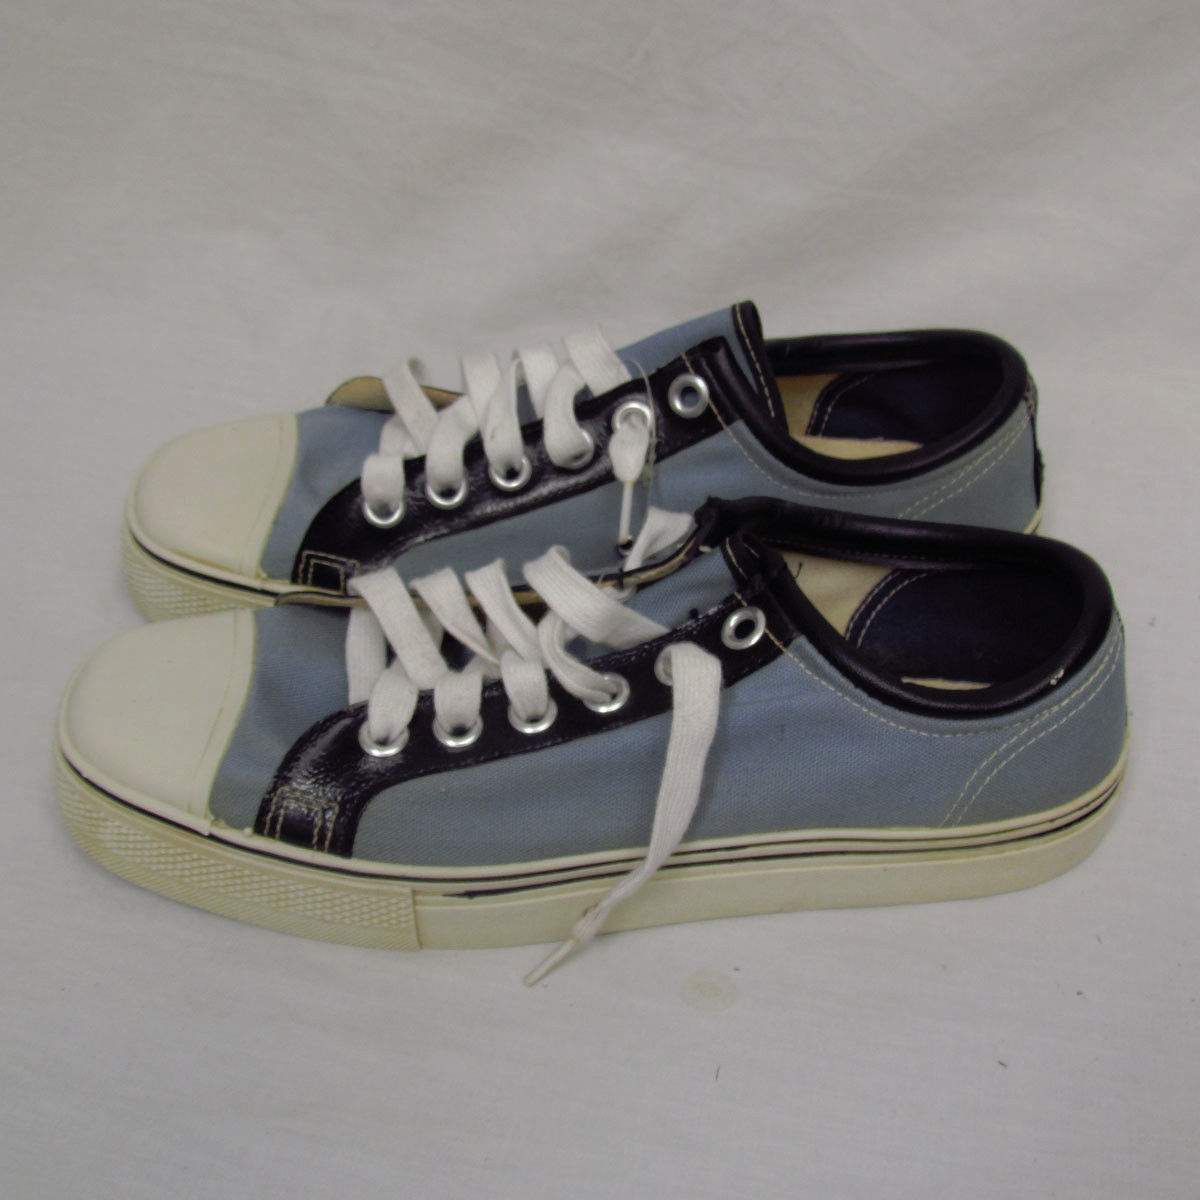 922231e9a3f2b roberto clemento sig sneakers vintage vintage roberto clemente sneakers   T2eC16N